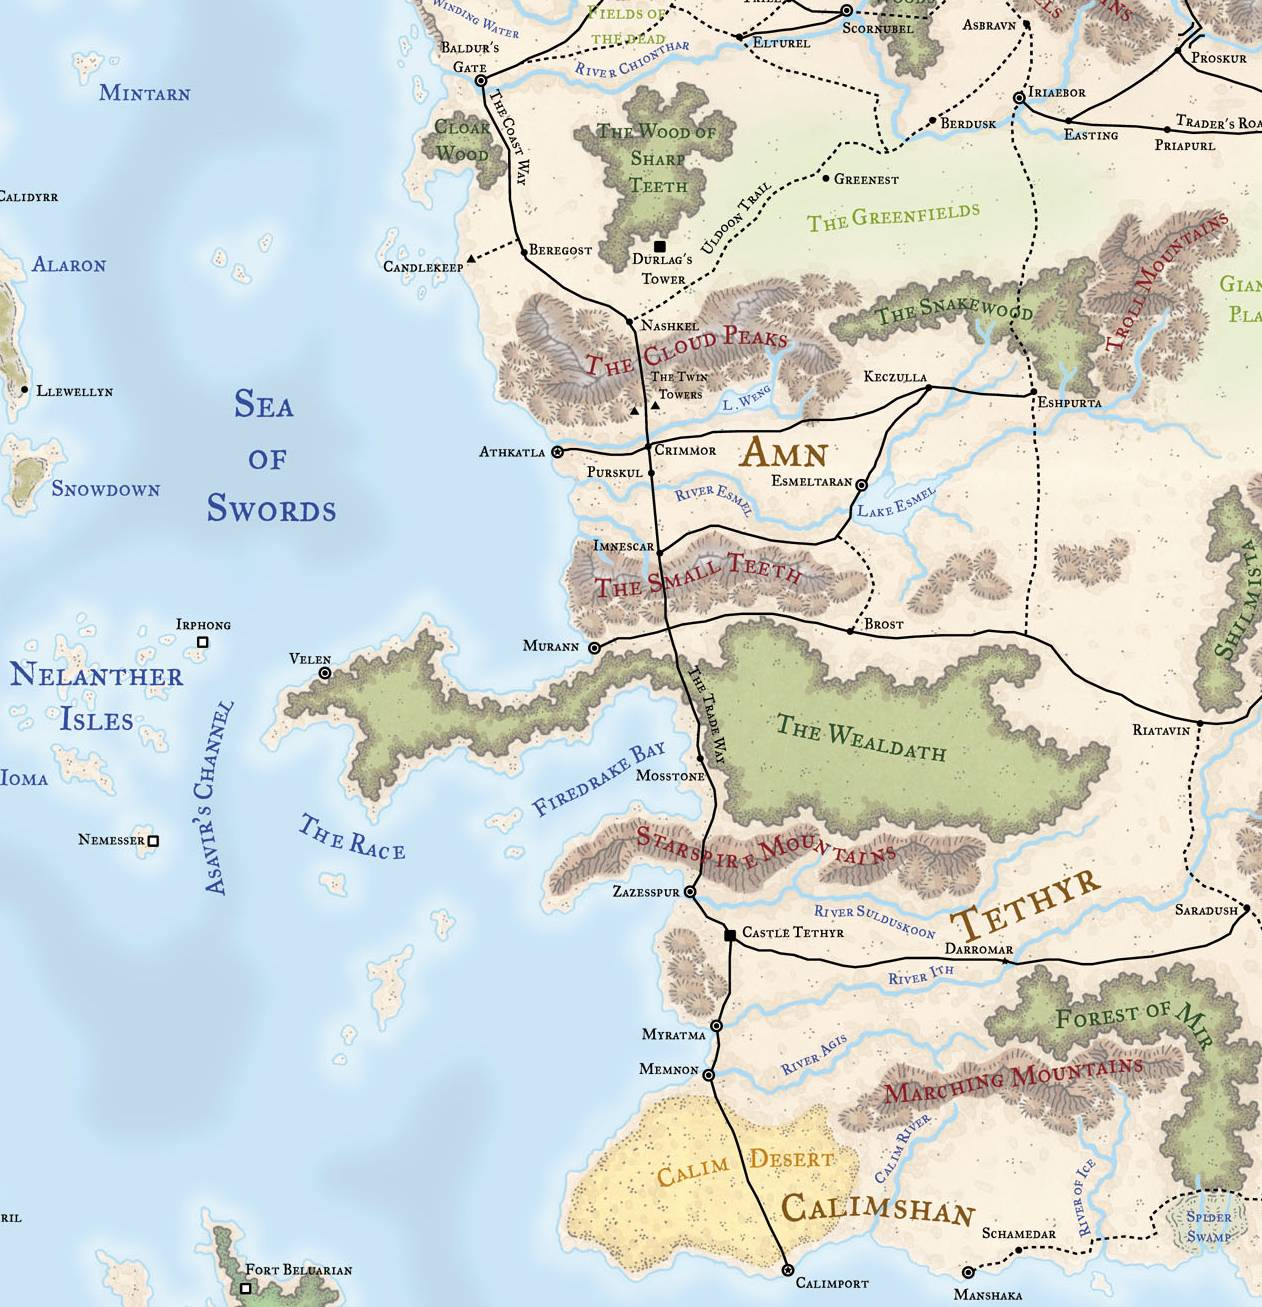 Forgotten Realms Map Pdf